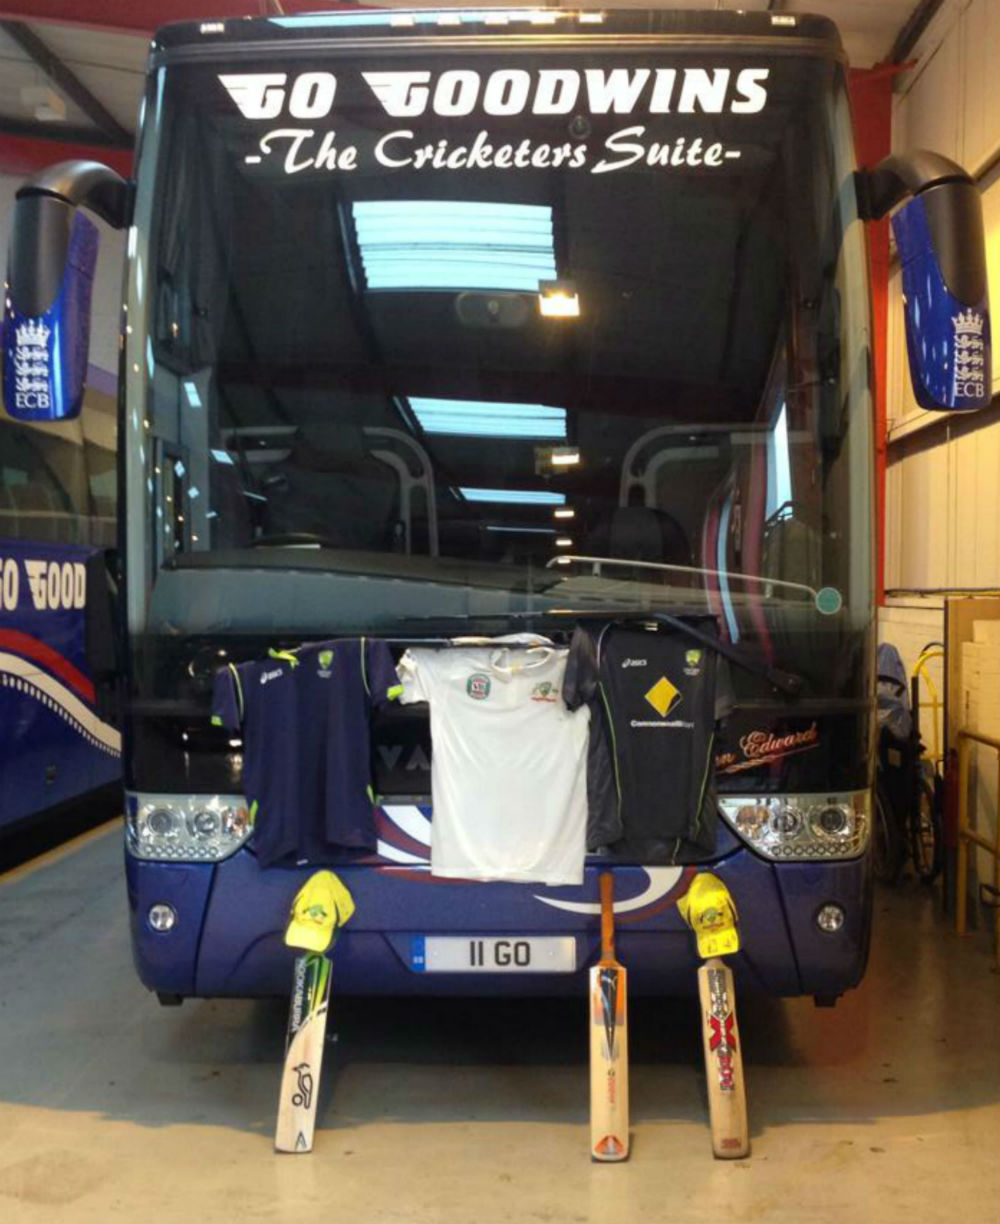 GO Goodwins Coaches bus kitted out with Australian cricket team gear